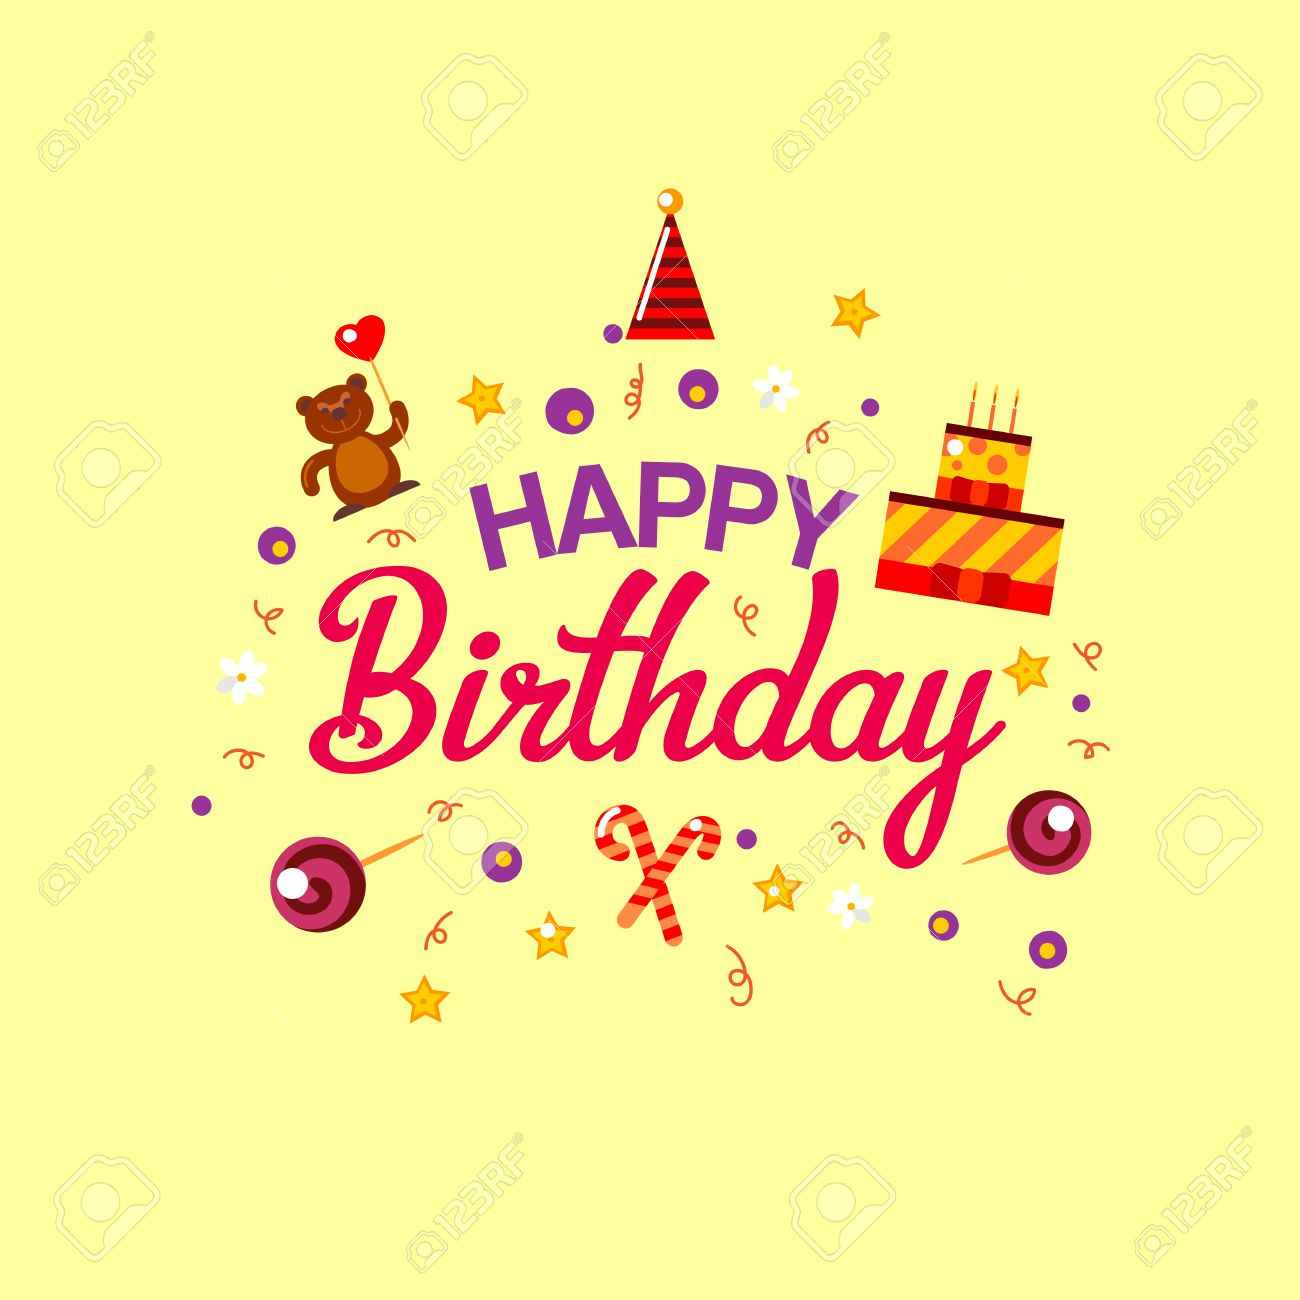 Happy Birthday Gift Card Birthday Cake And Toys Vector – Birthday Gift Cards